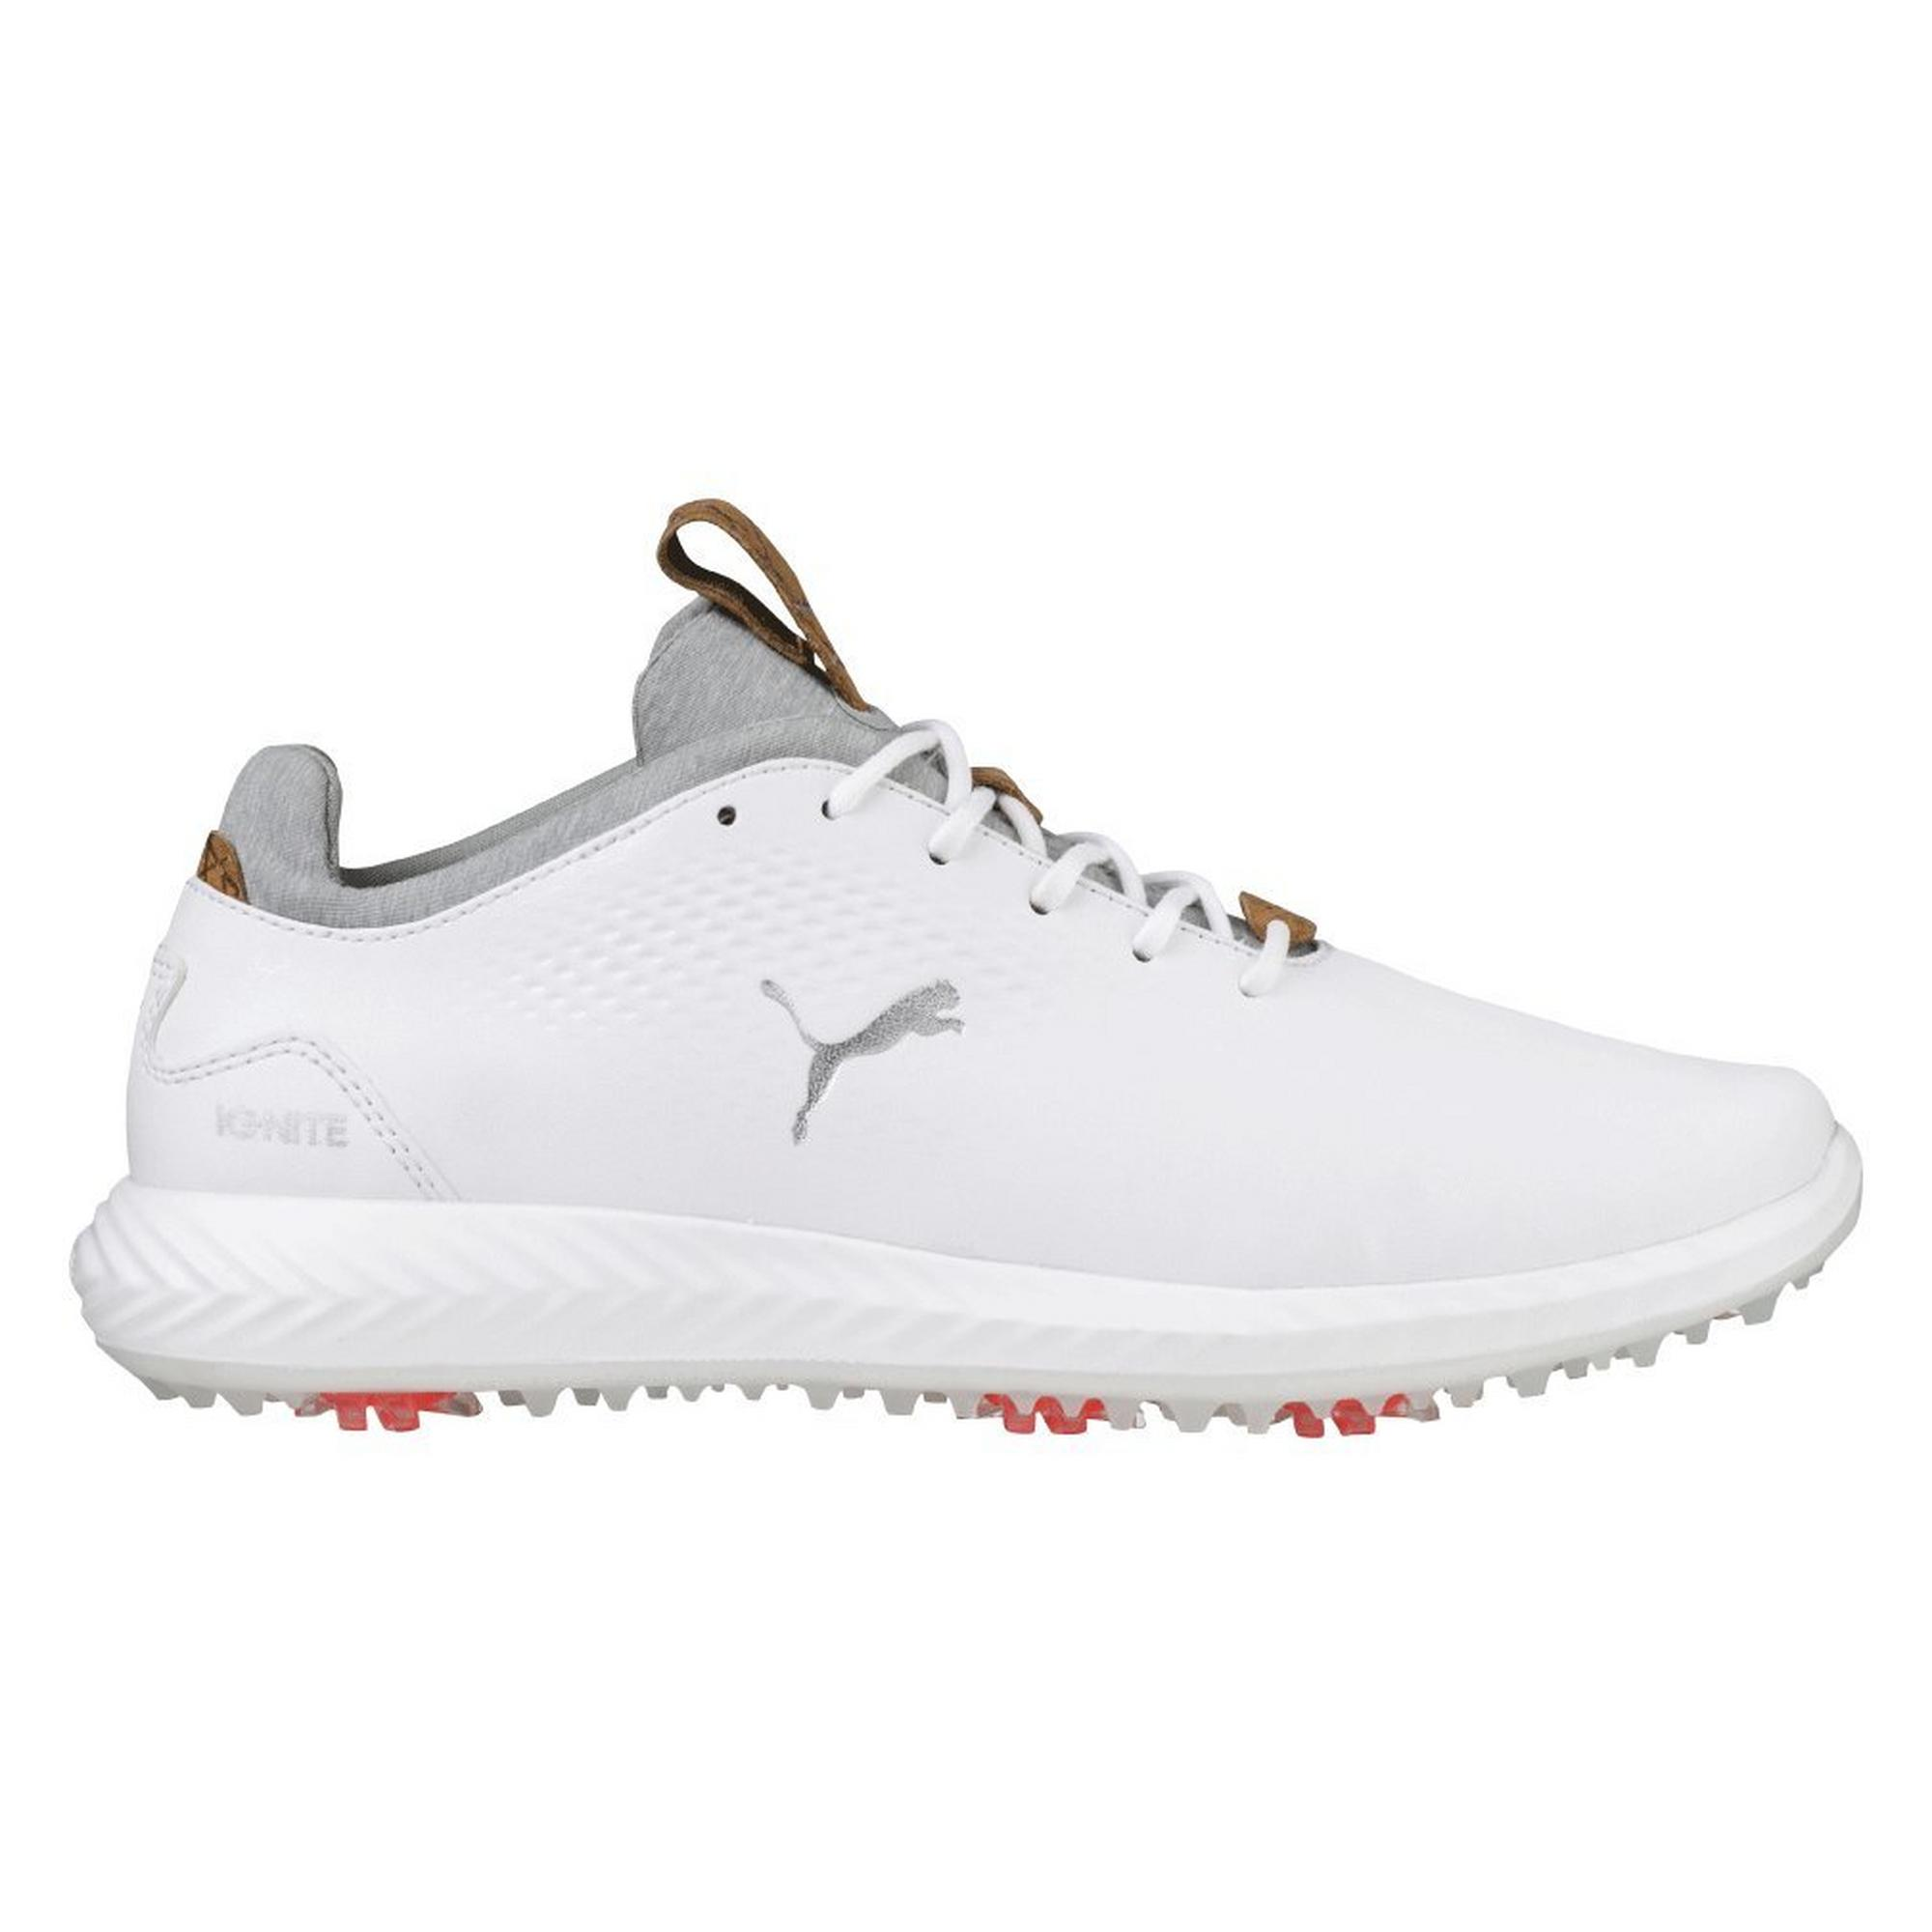 Junior Ignite Poweradapt Spiked Golf Shoe - WHT